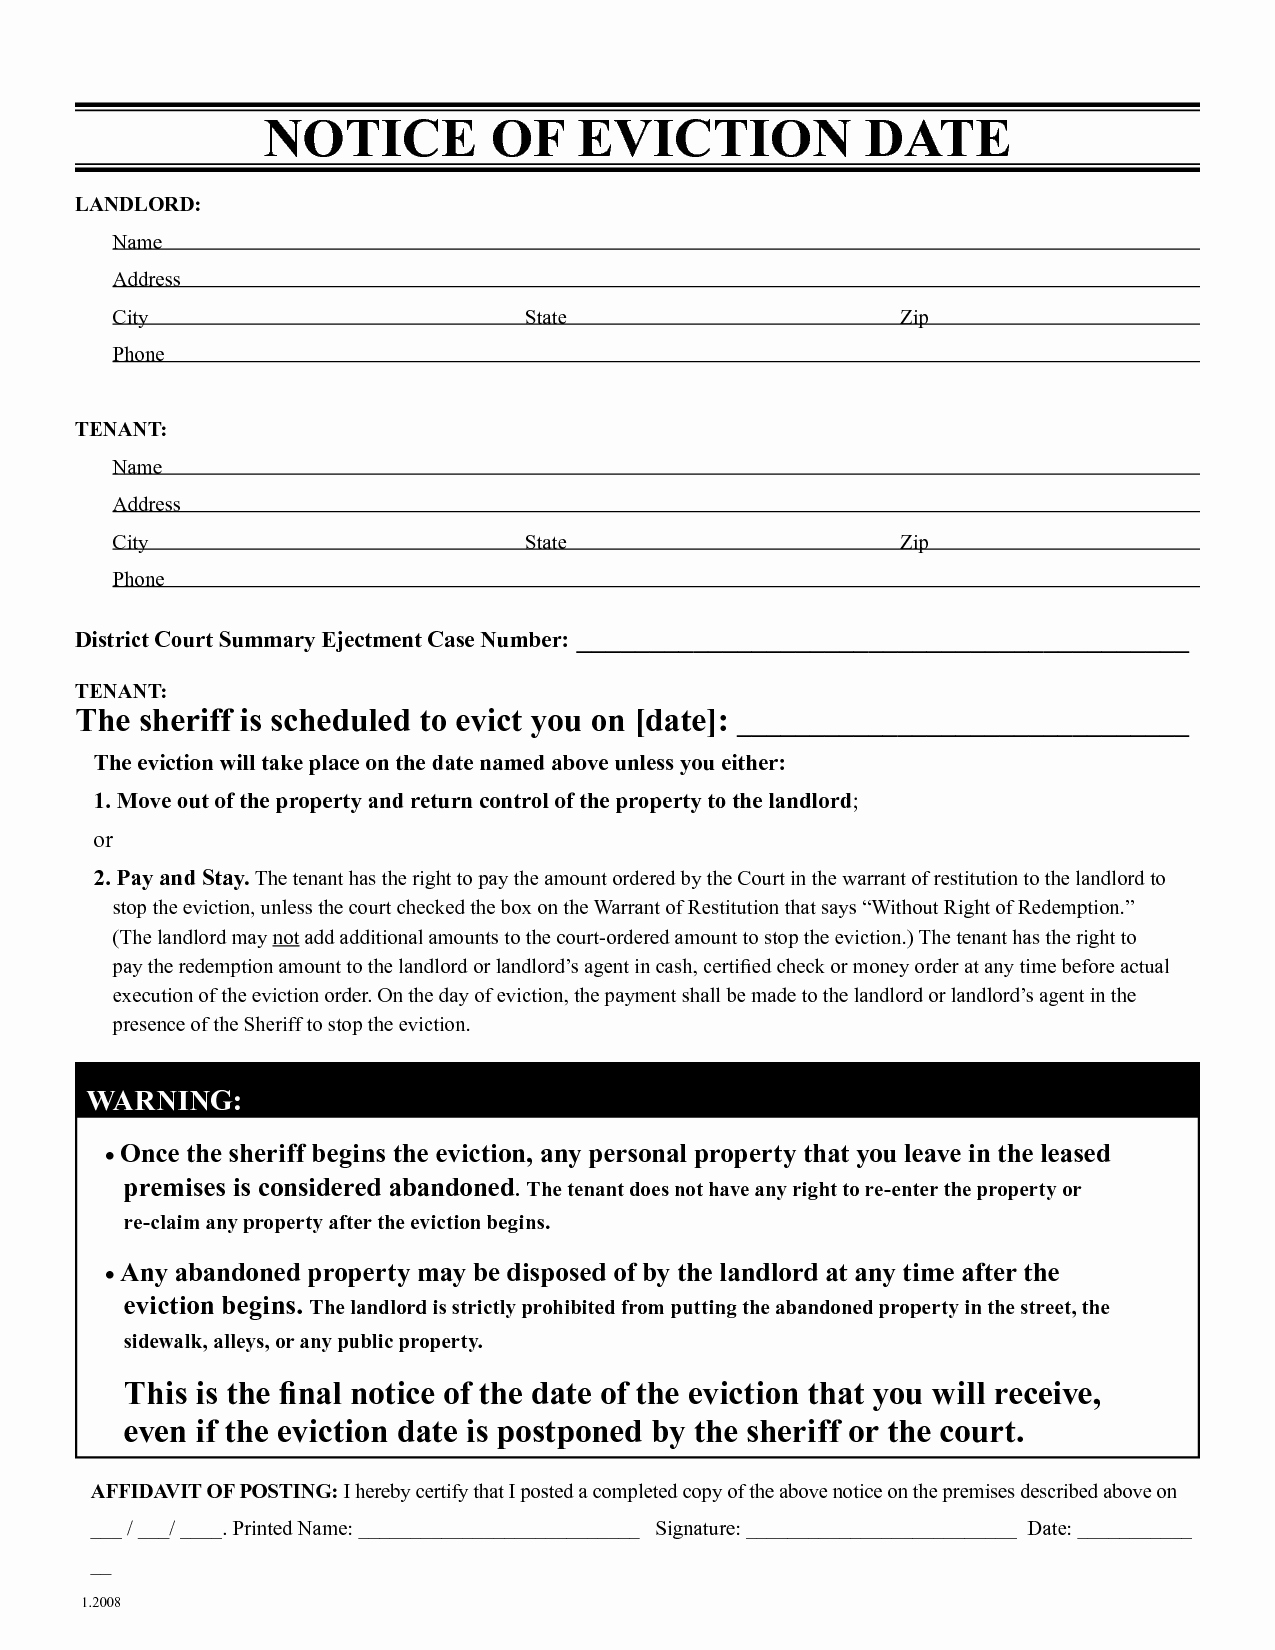 Eviction Notice Template Pdf Best Of Free Eviction Notice Template